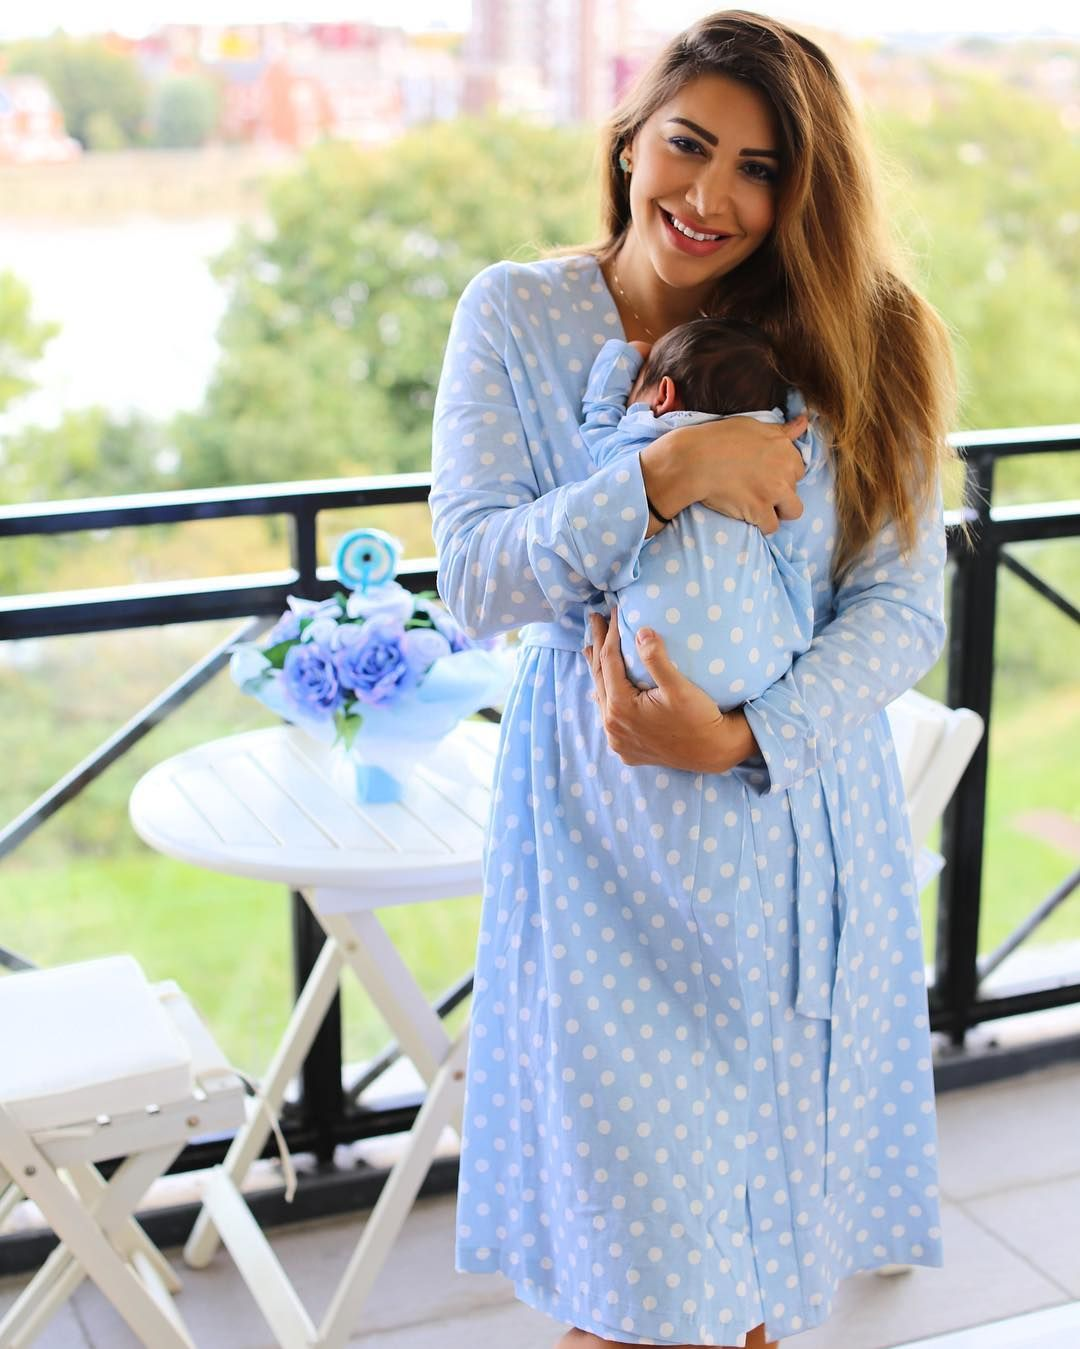 861ac845d1638 This is what I want to wear after giving birth! Cute stylish pajamas for  the hospital and home. (Instagram: @fashionlollipopblog) #milkandbaby